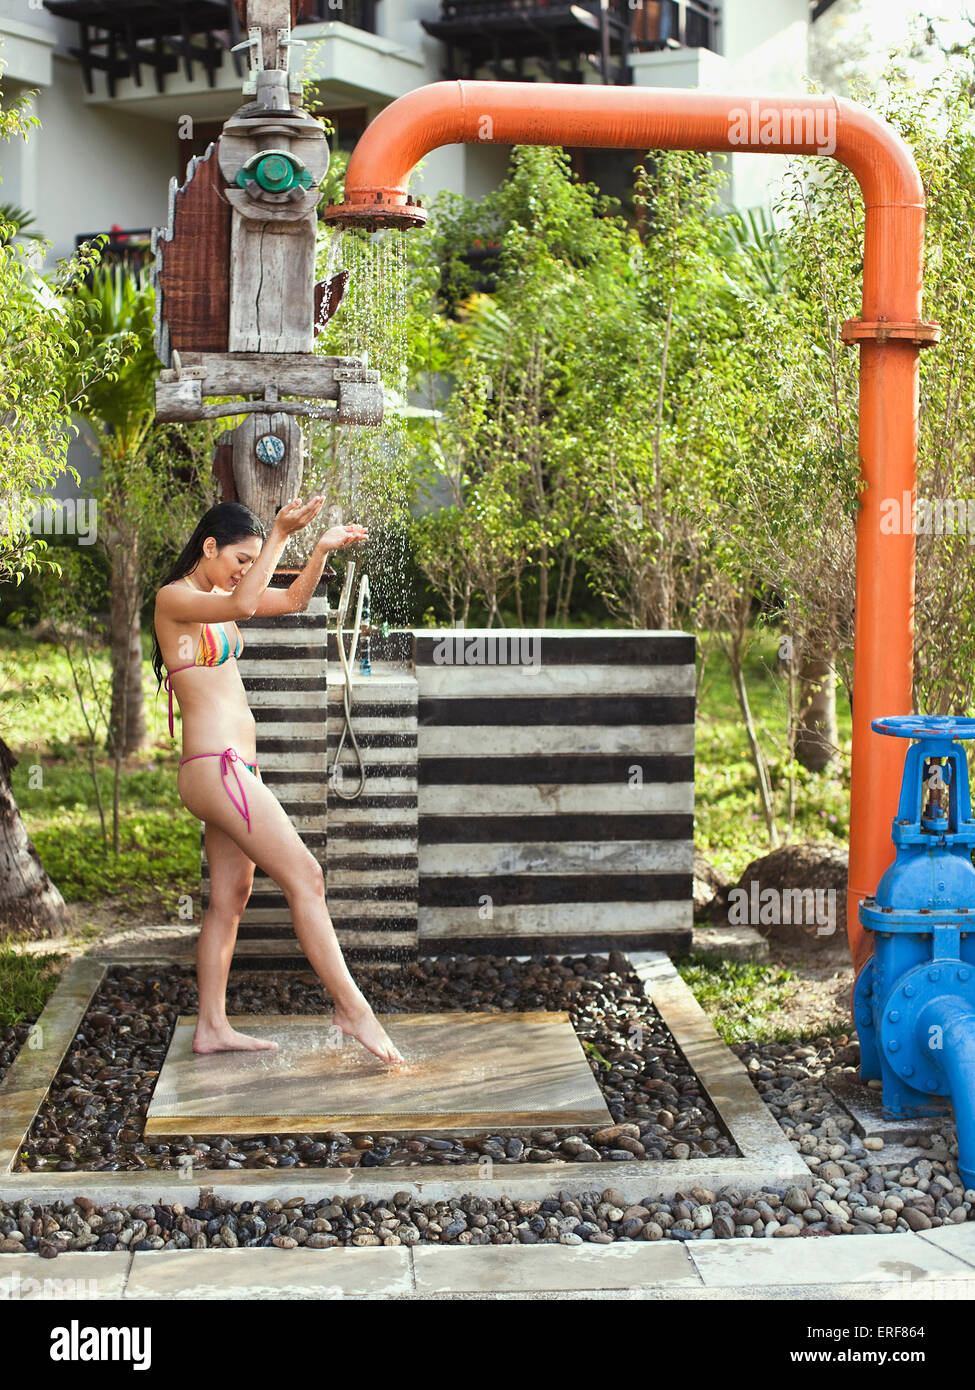 A woman showers under the pipe shower near the main pool at Indigo Pearl resort, Phuket, Thailand. - Stock Image